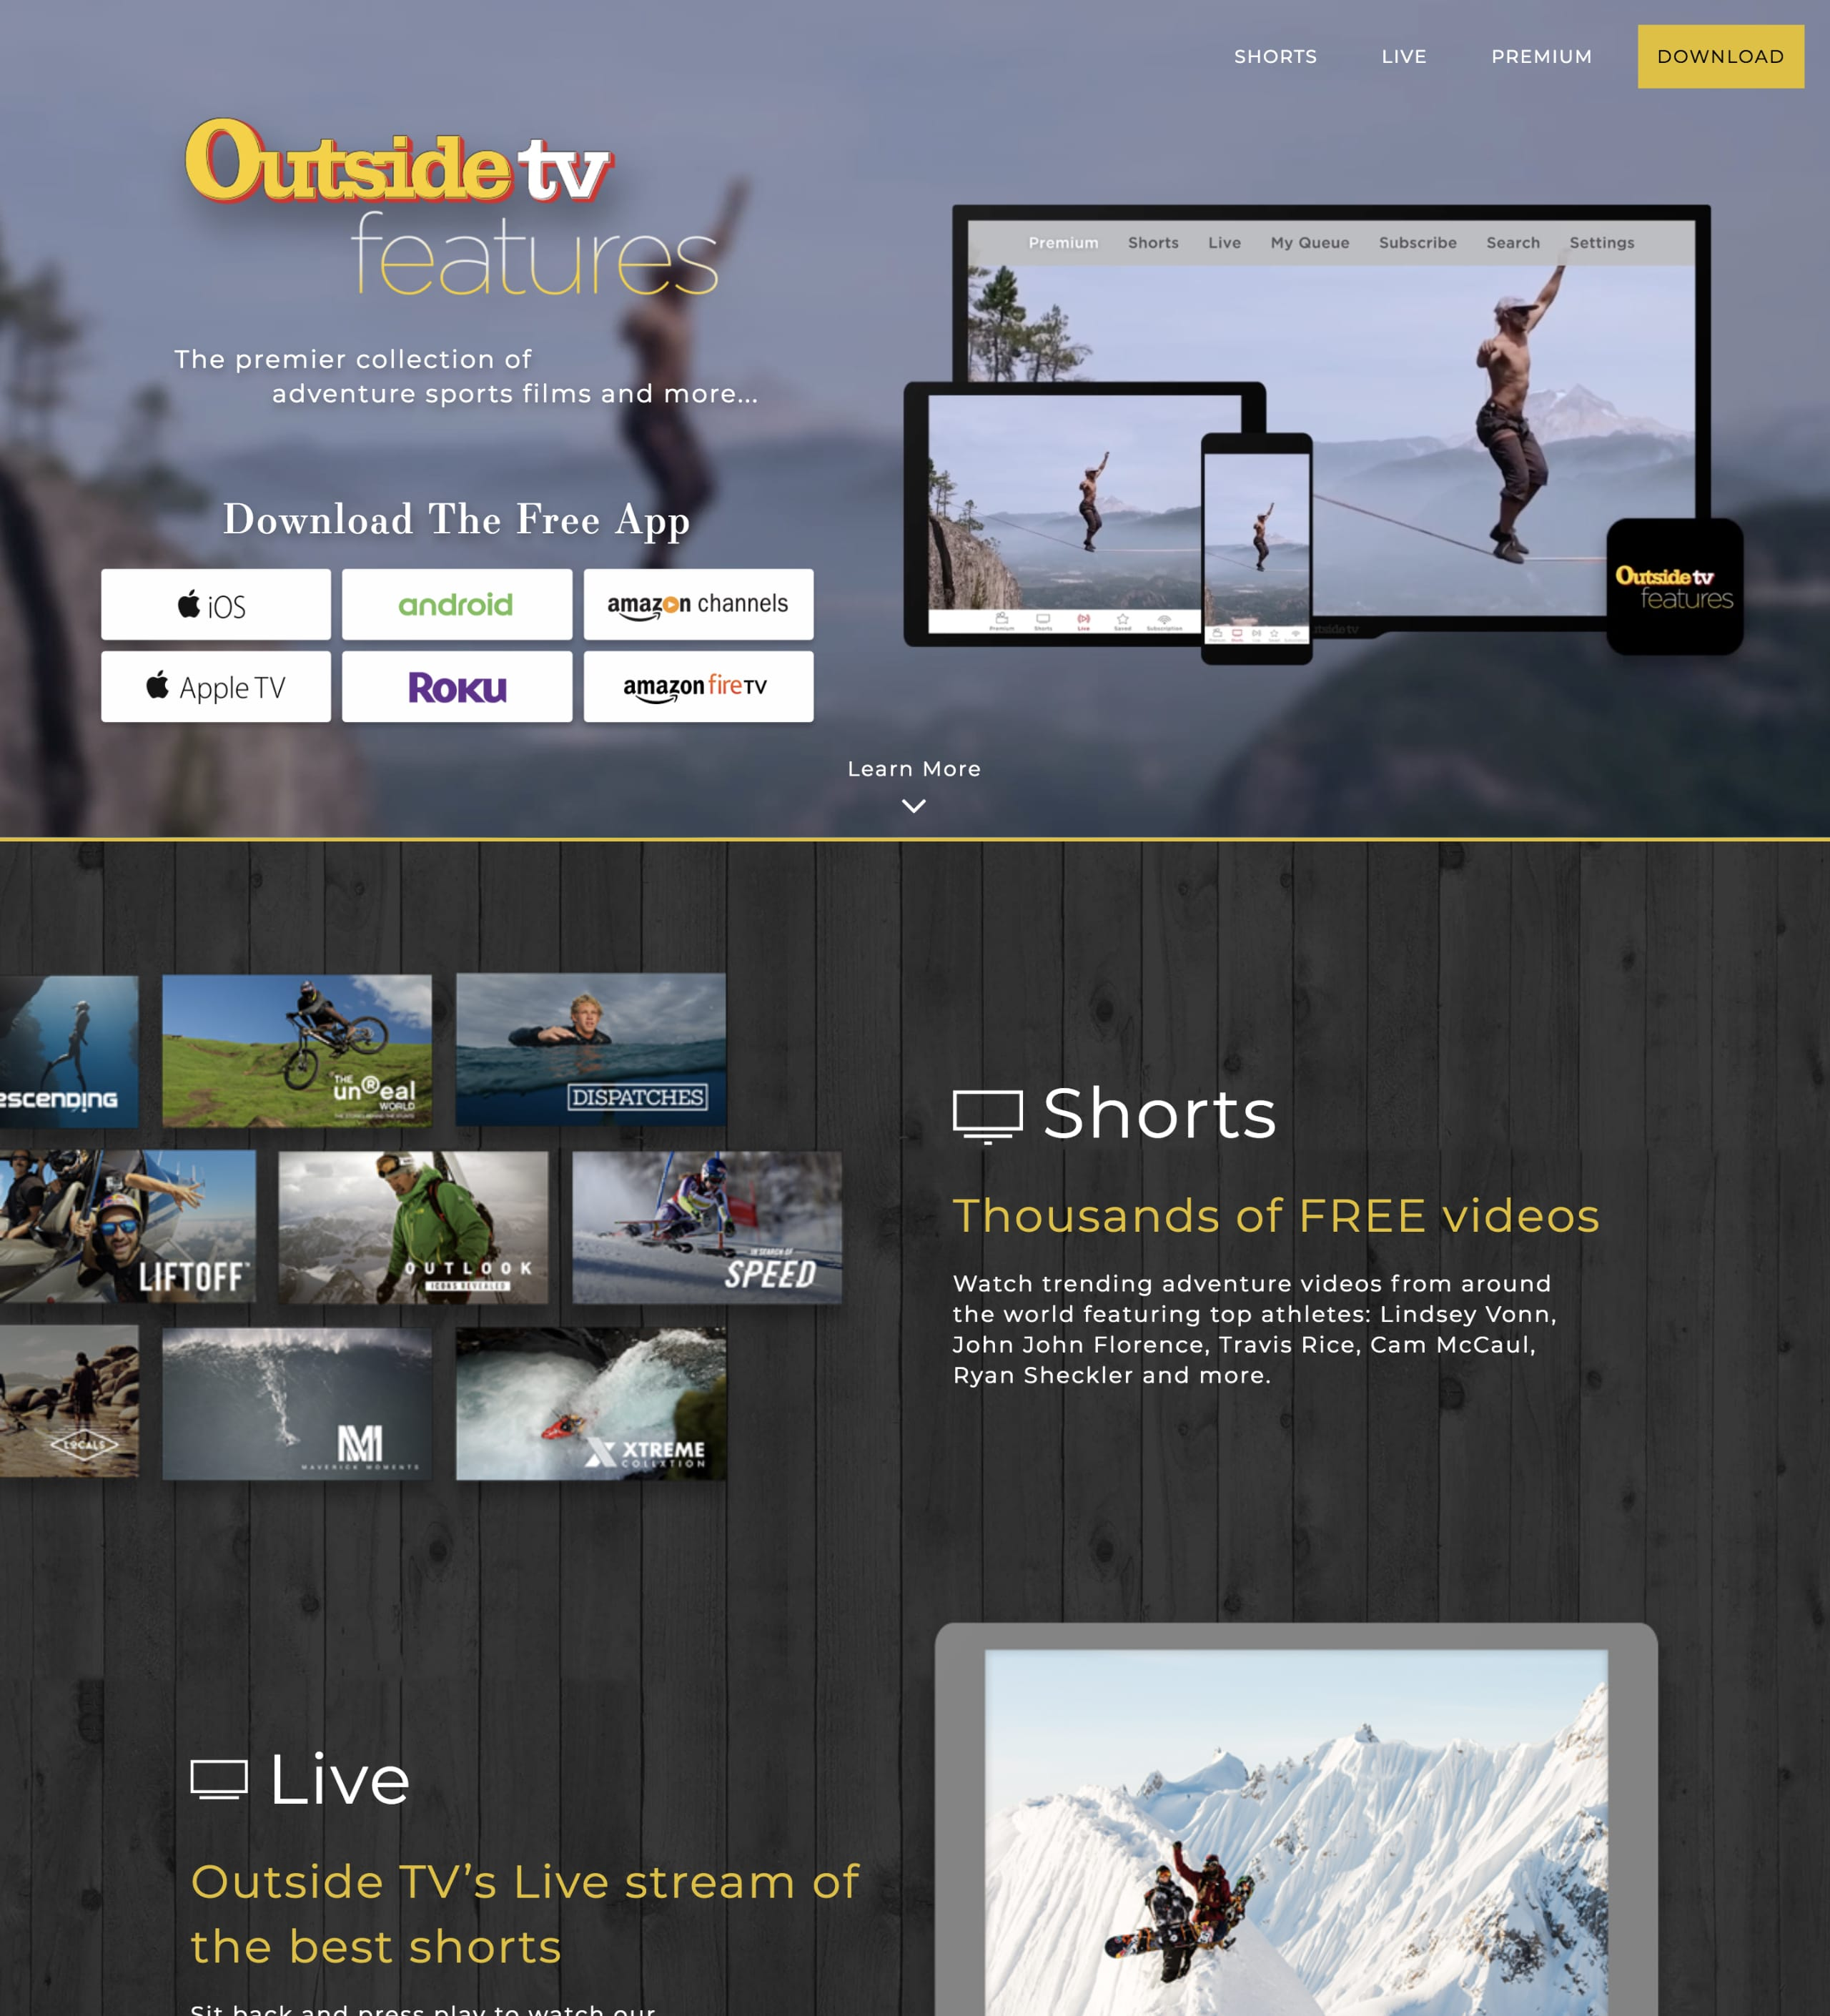 Outside TV Features Website Screenshot